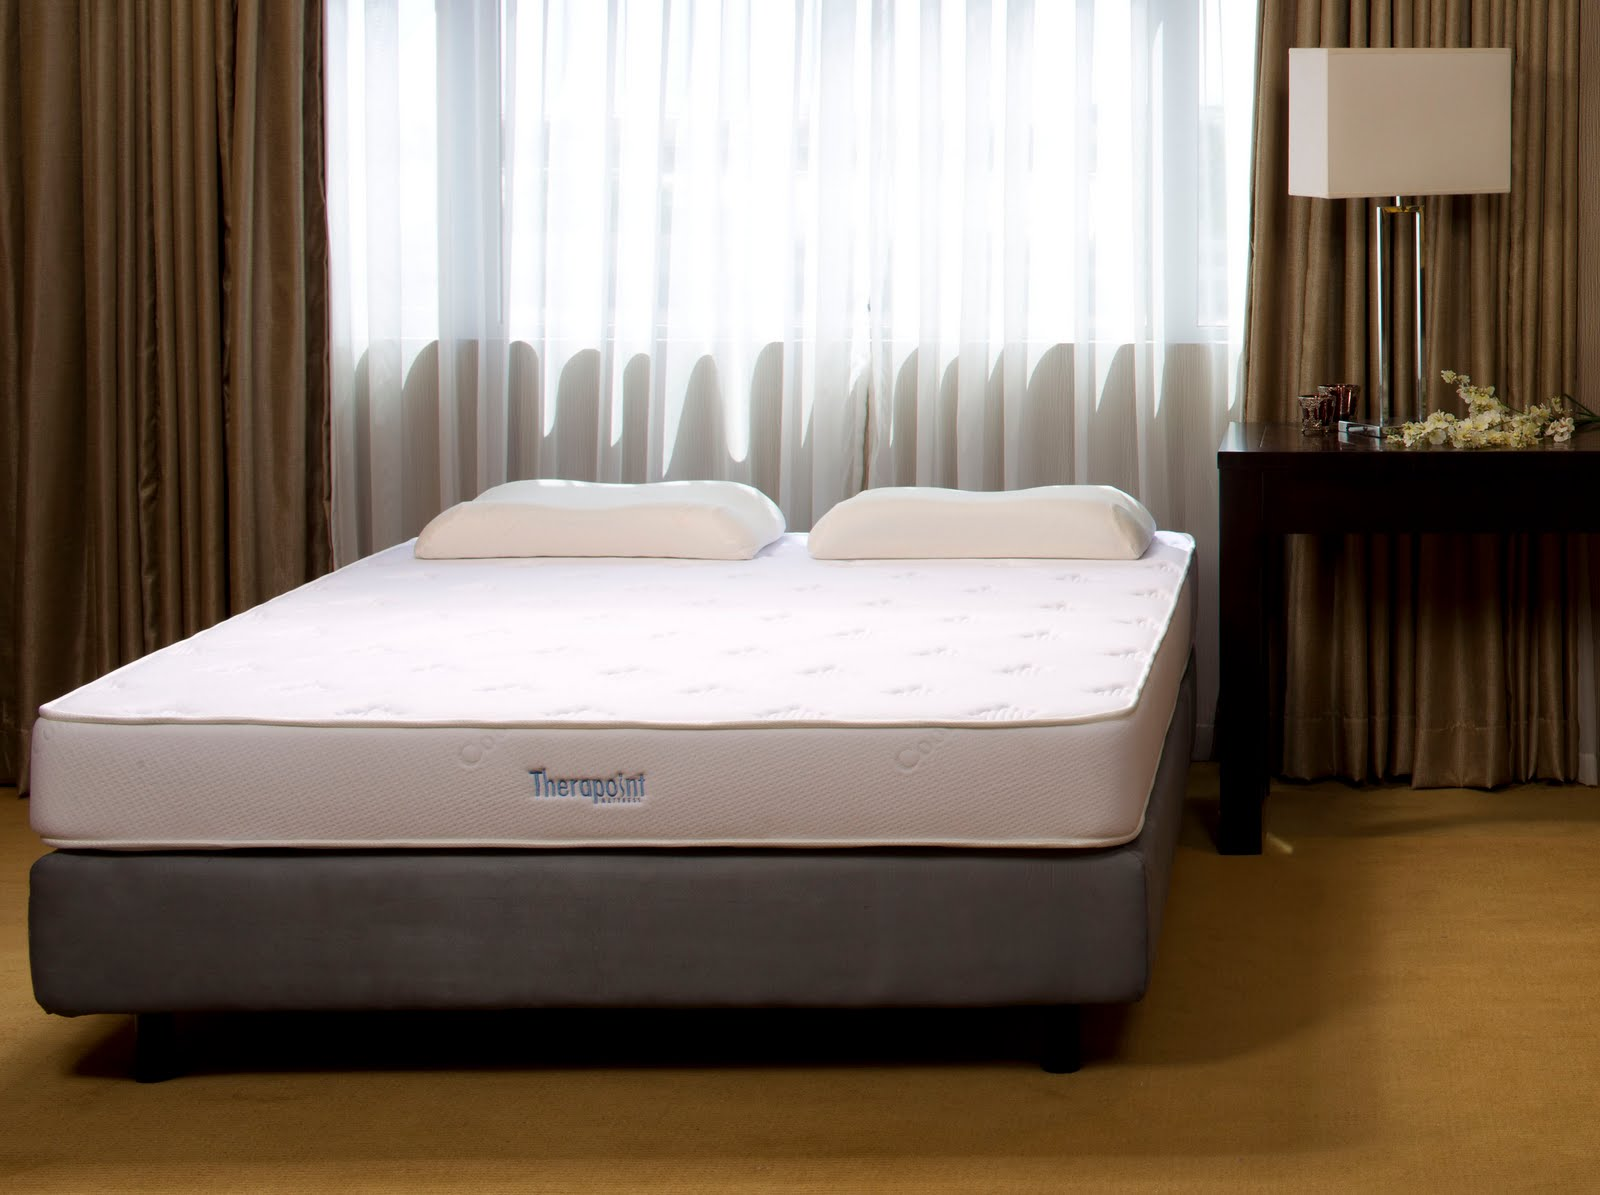 gel your topper innovations plush design layer dual to memory home of and unique boost quality beautiful mattress fiber foam toppers inch images year sleep matters best